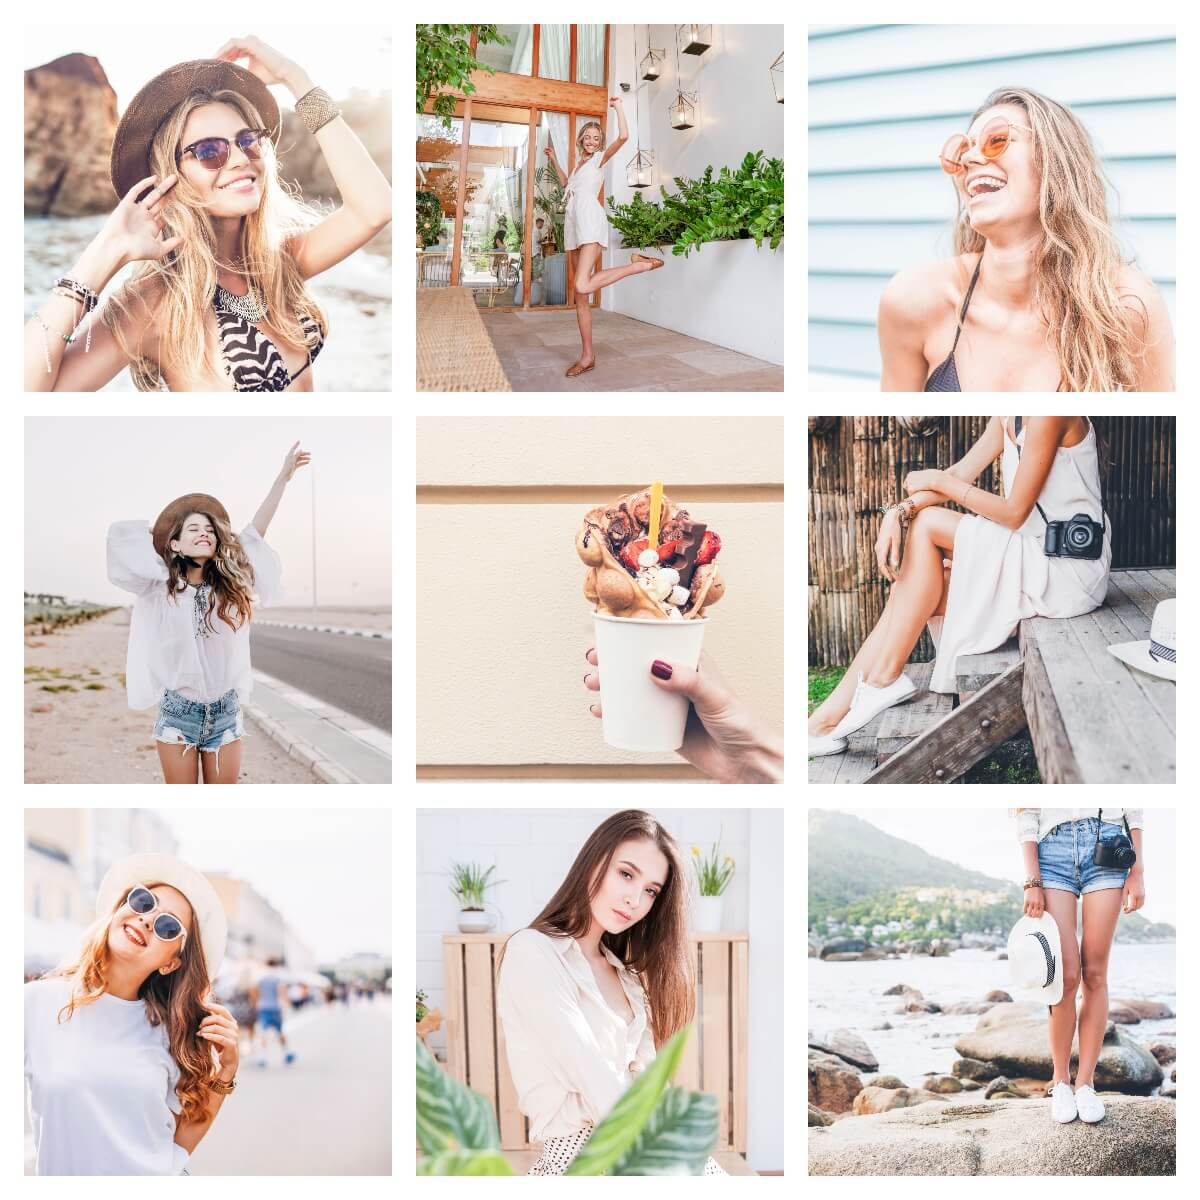 Bright and Airy moodboard preset filters Pixgrade for mobile and desktop